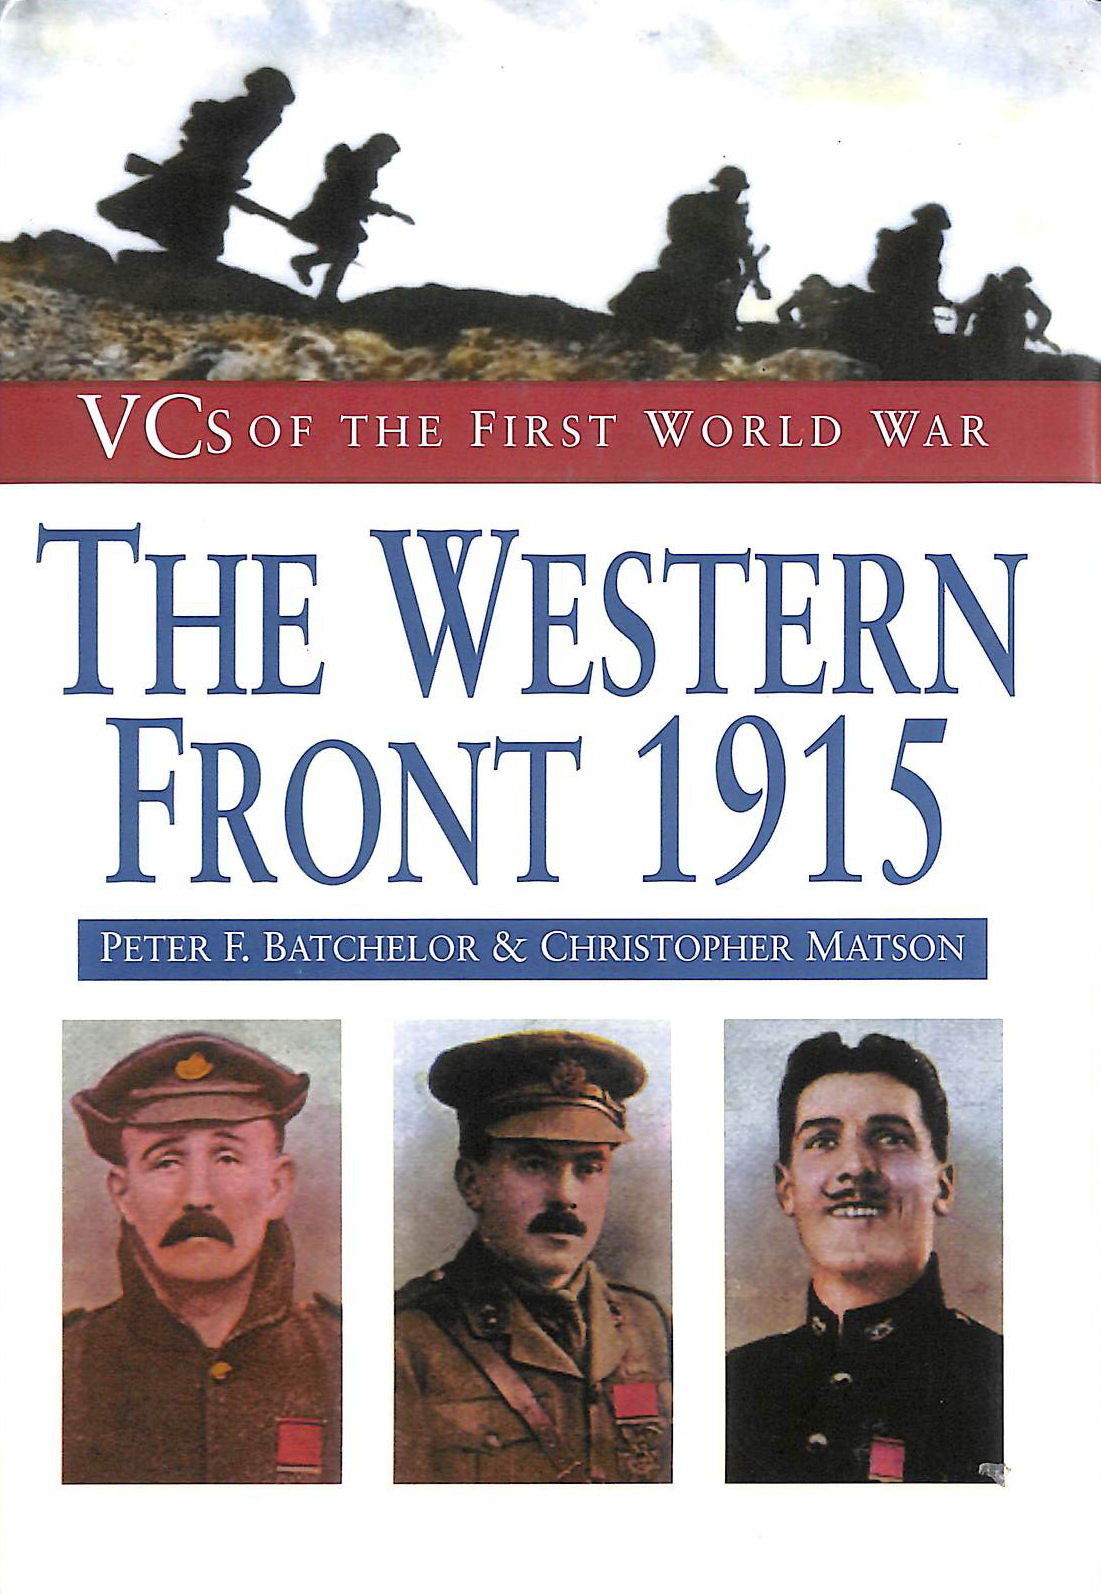 Image for Western Front, 1915 (VCs of the First World War)